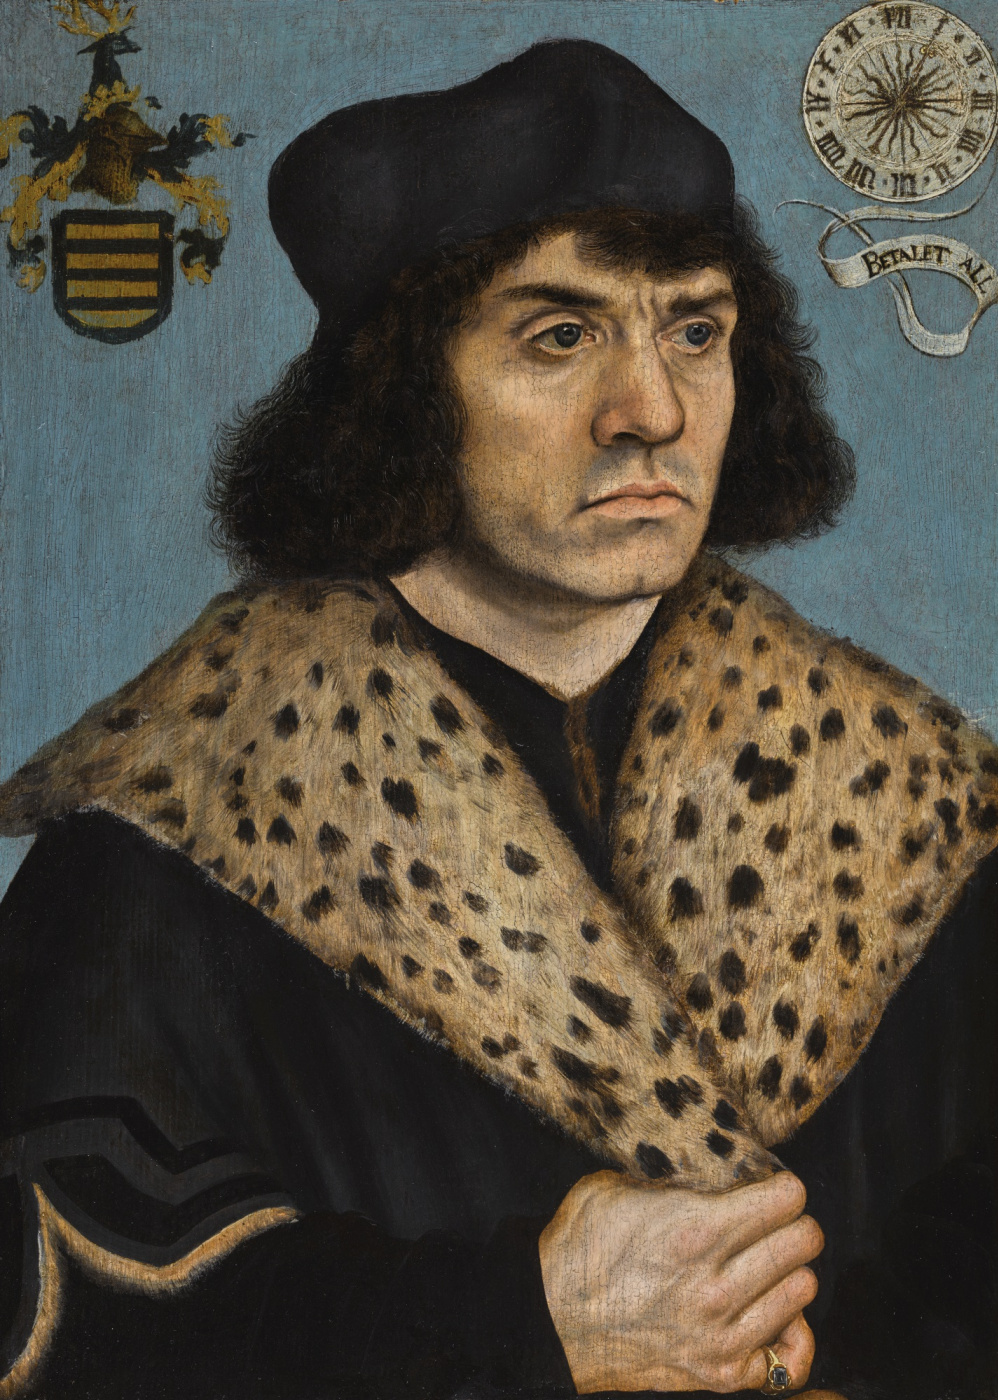 Lucas Cranach the Elder. Portrait of a Man with a Spotted Fur Collar